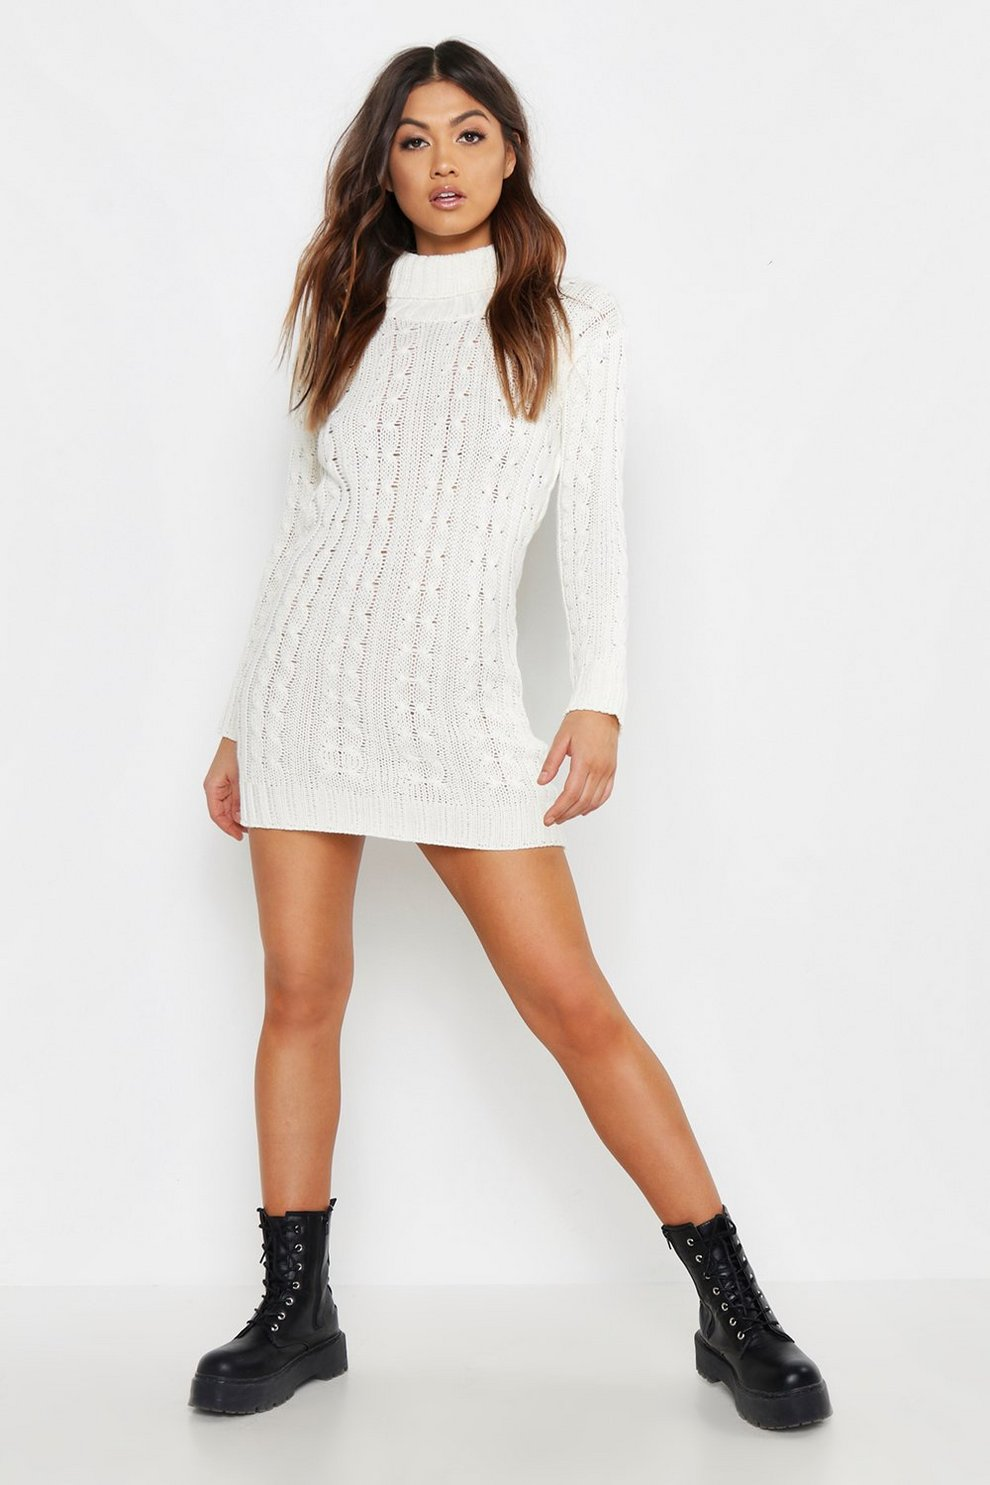 2a2d83b02d4 Womens Ivory Cable Knit Jumper Dress. Hover to zoom